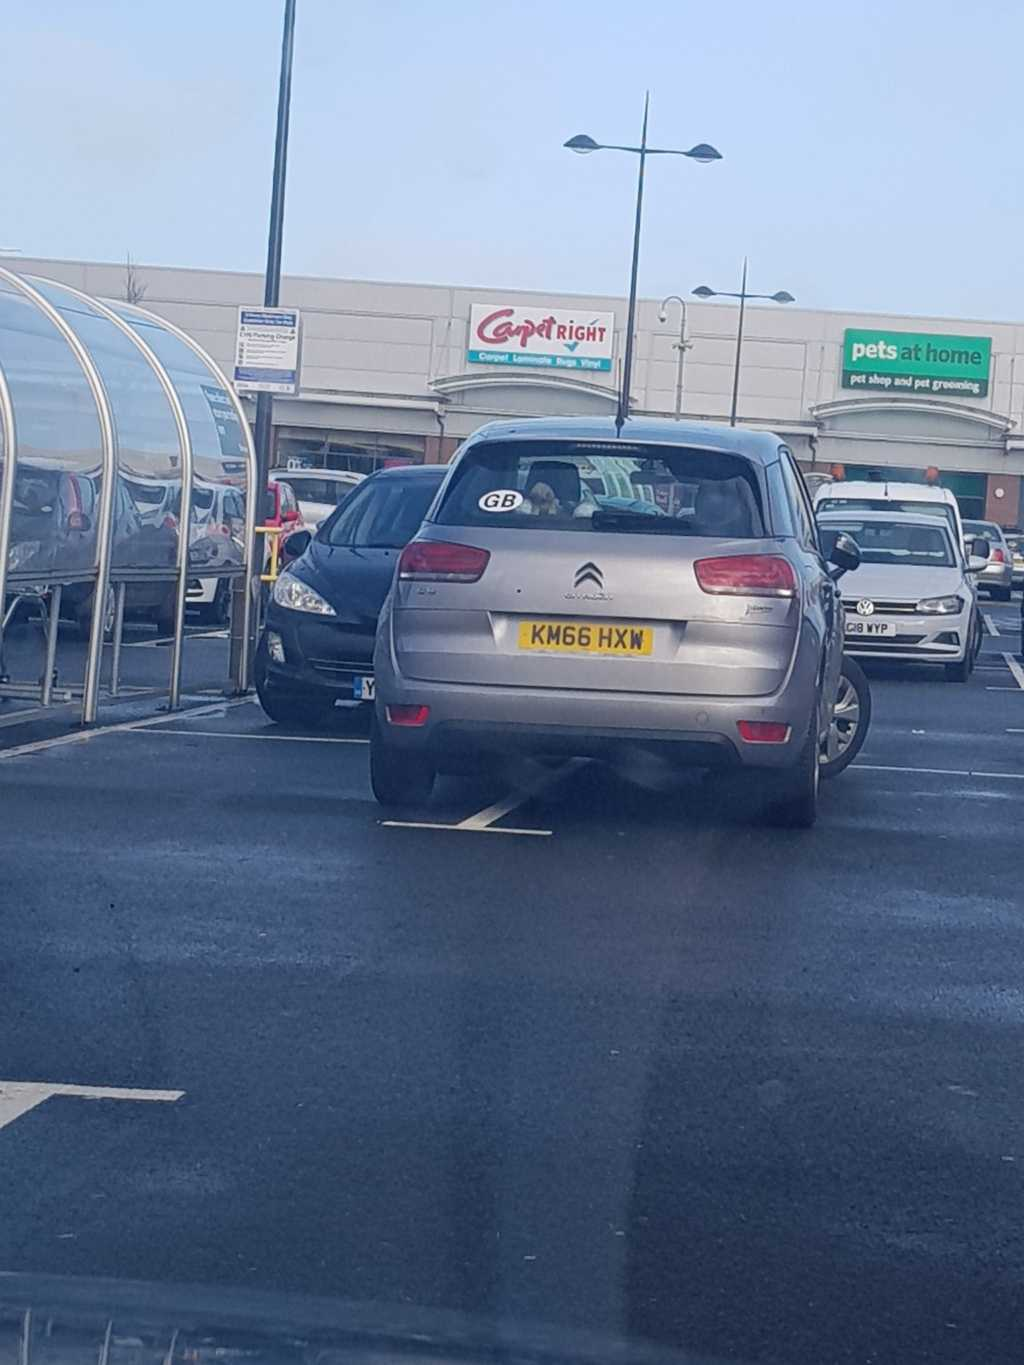 KM66 HXW is an Inconsiderate Parker